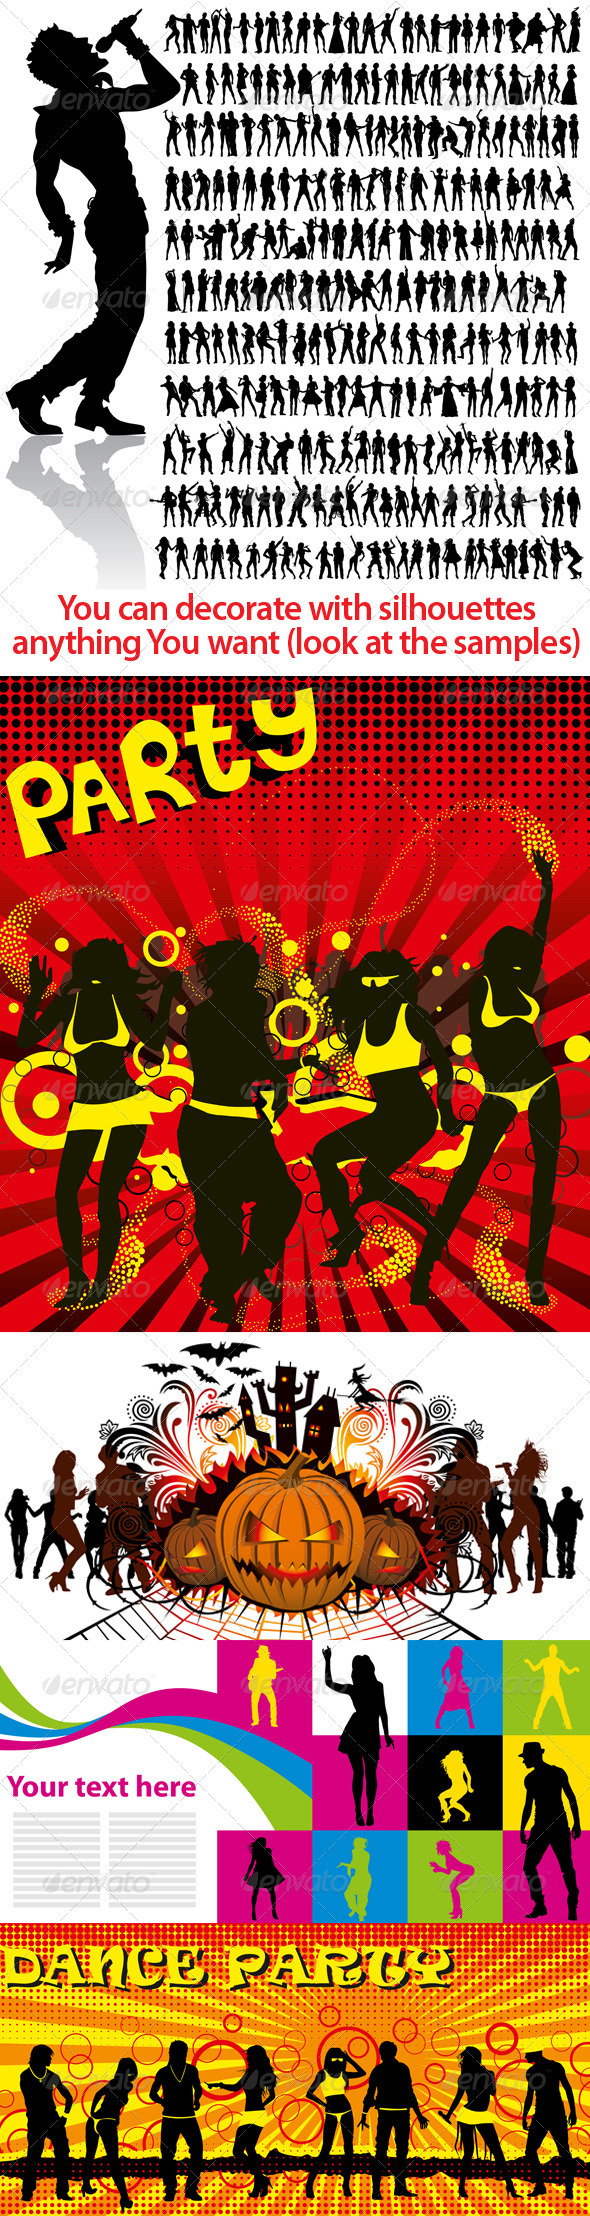 GraphicRiver Dancing and Singing People s Silhouettes Big Set 815689